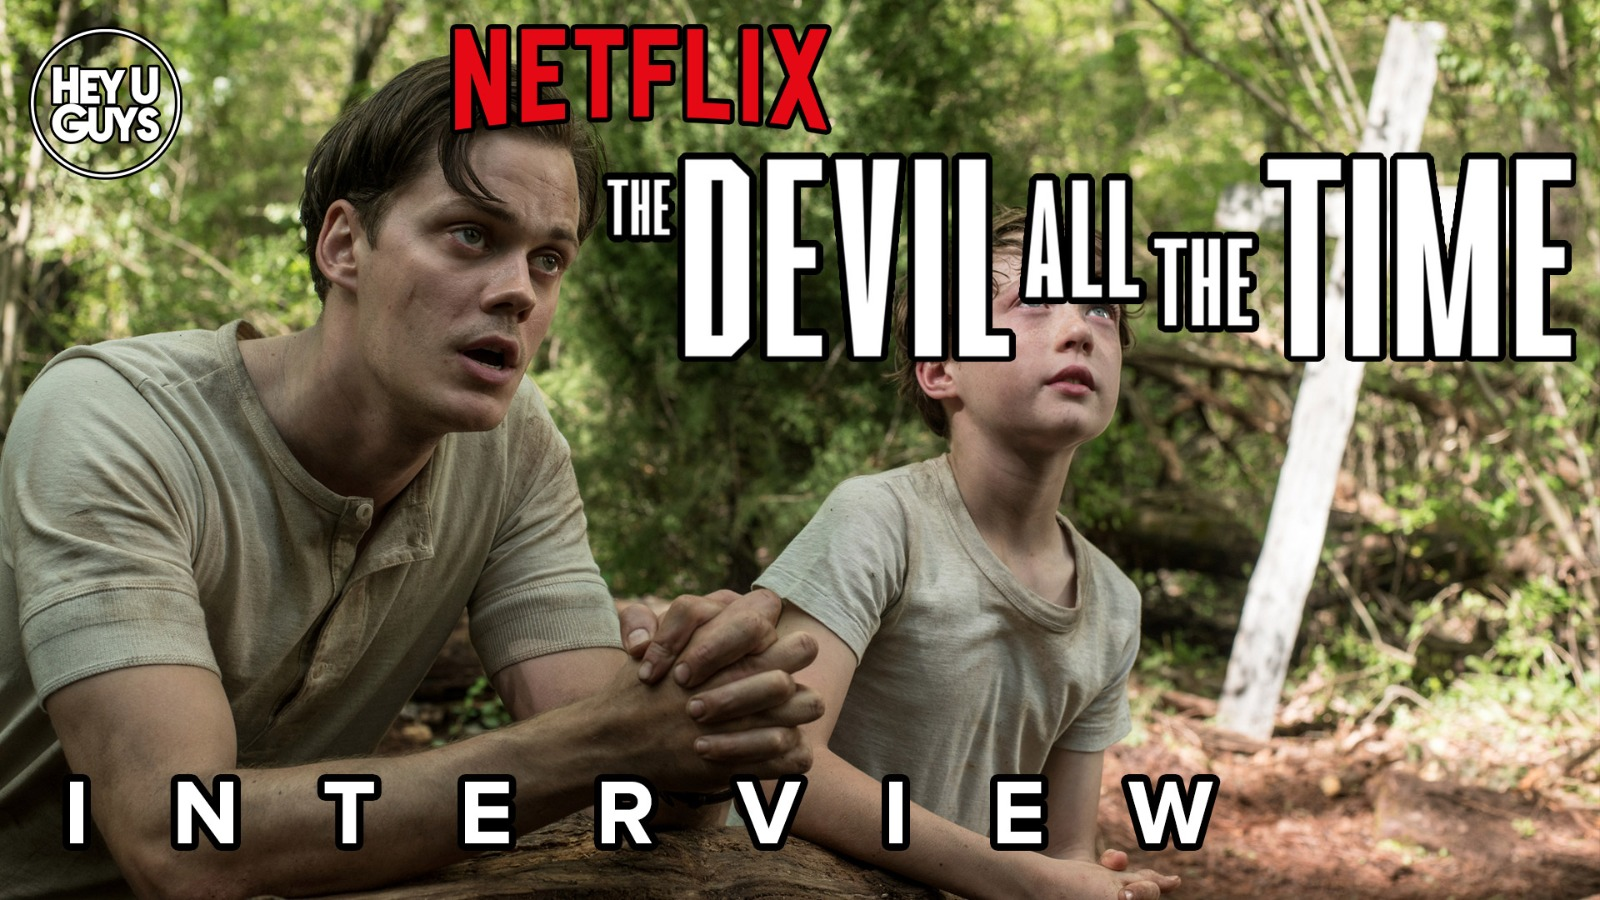 The Devil all the time cast interviewsz